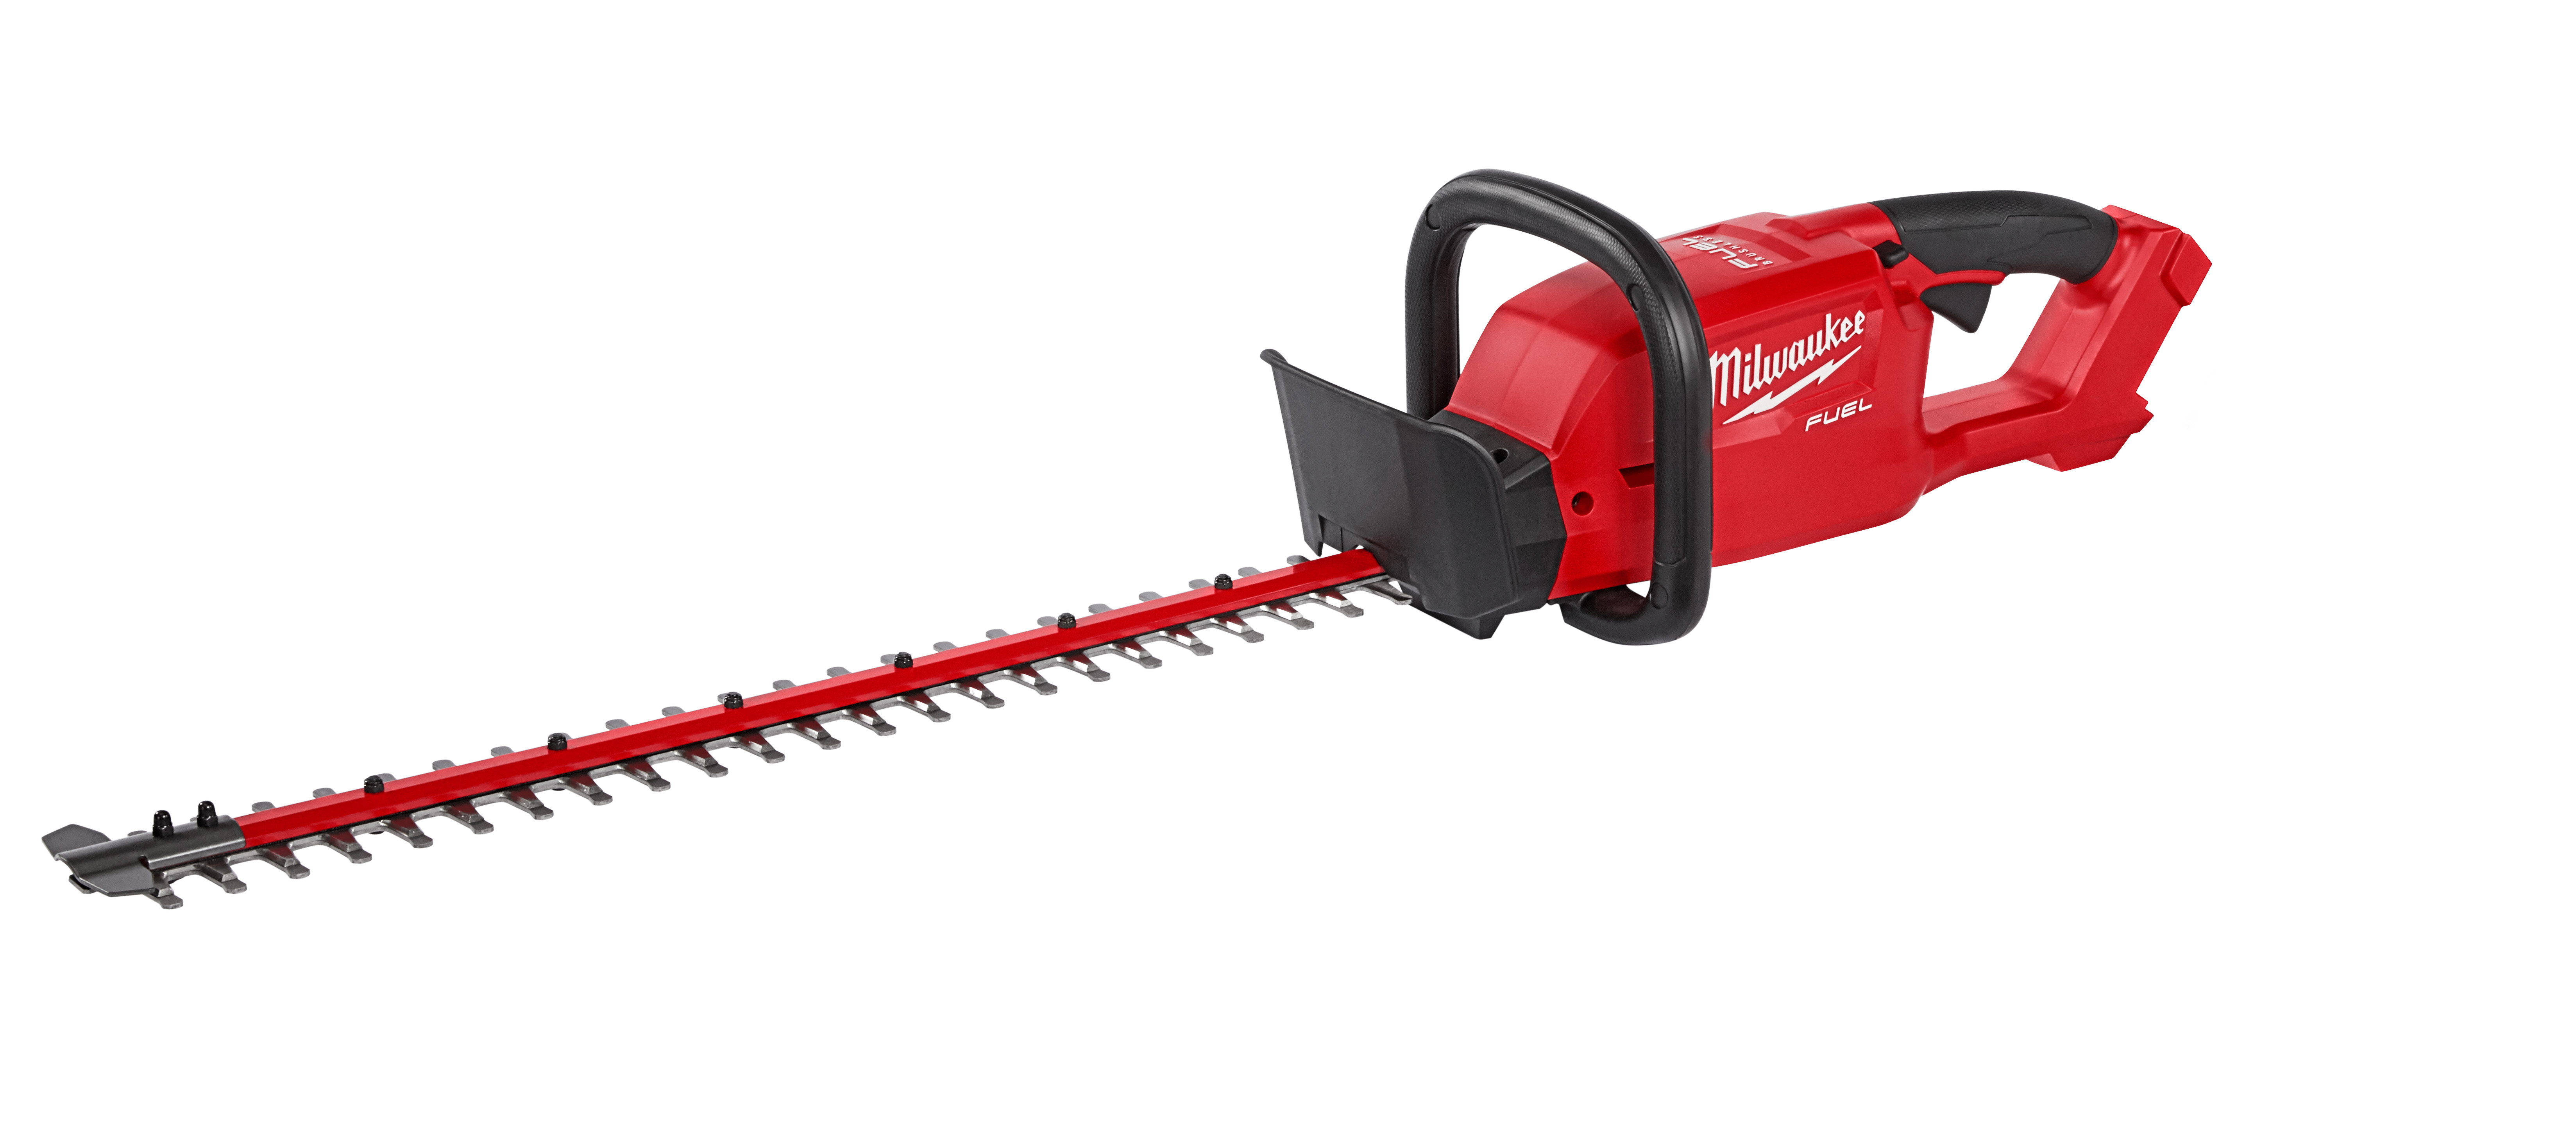 Milwaukee® M18™ FUEL™ 2726-20 Cordless Heavy Duty Hedge Trimmer, 3/4 in Cutting, Double Sided Dual Action Blade, 18 VDC, 42-1/2 in OAL, Lithium-Ion Battery, Plastic Housing